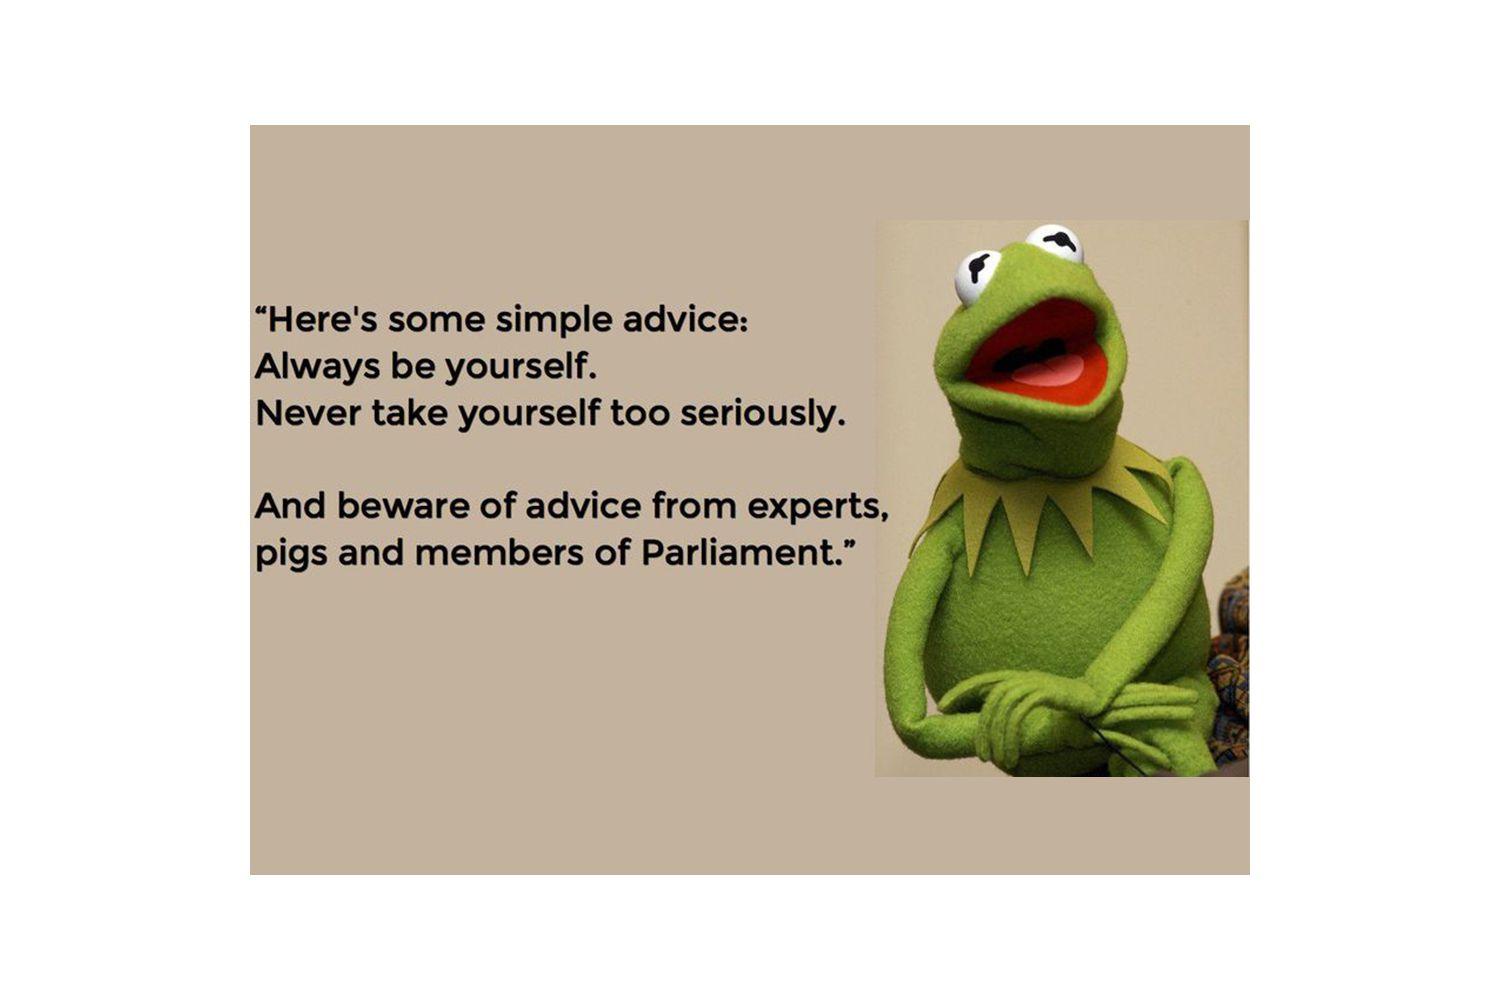 Beware of advice from experts, pigs and members of Parliament.